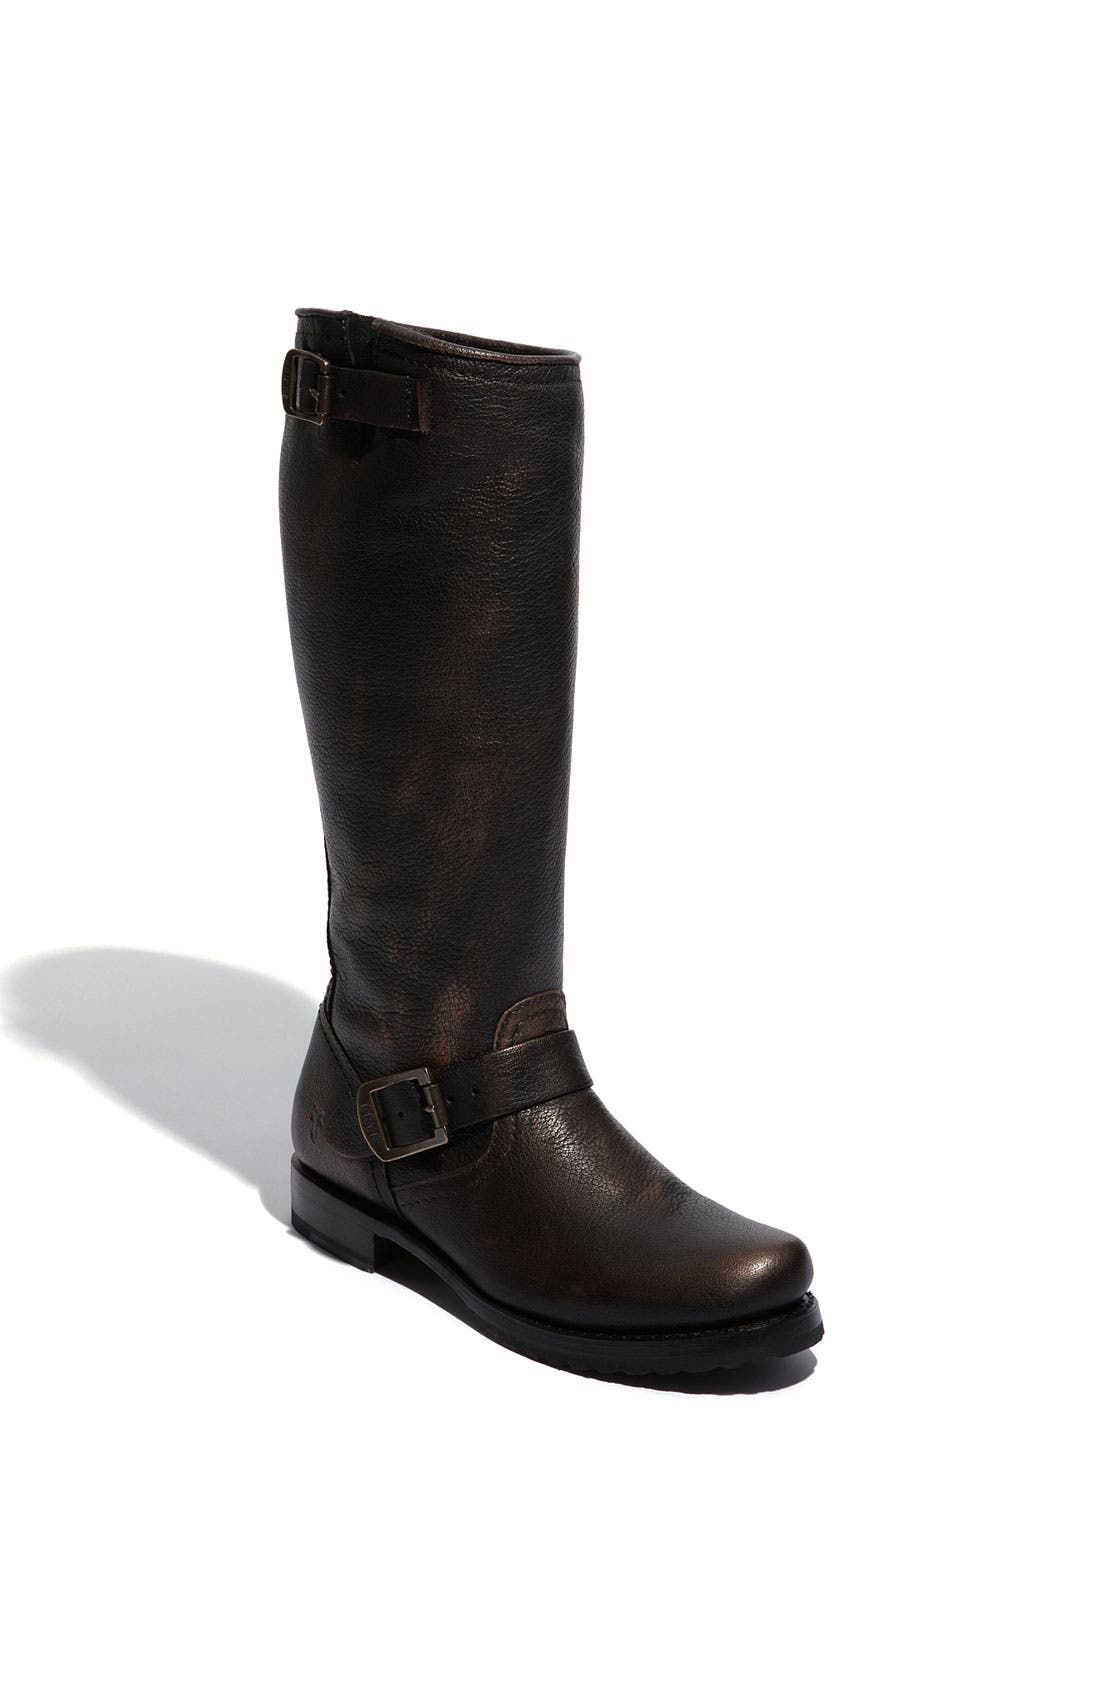 Main Image - Frye 'Veronica' Slouch Boot